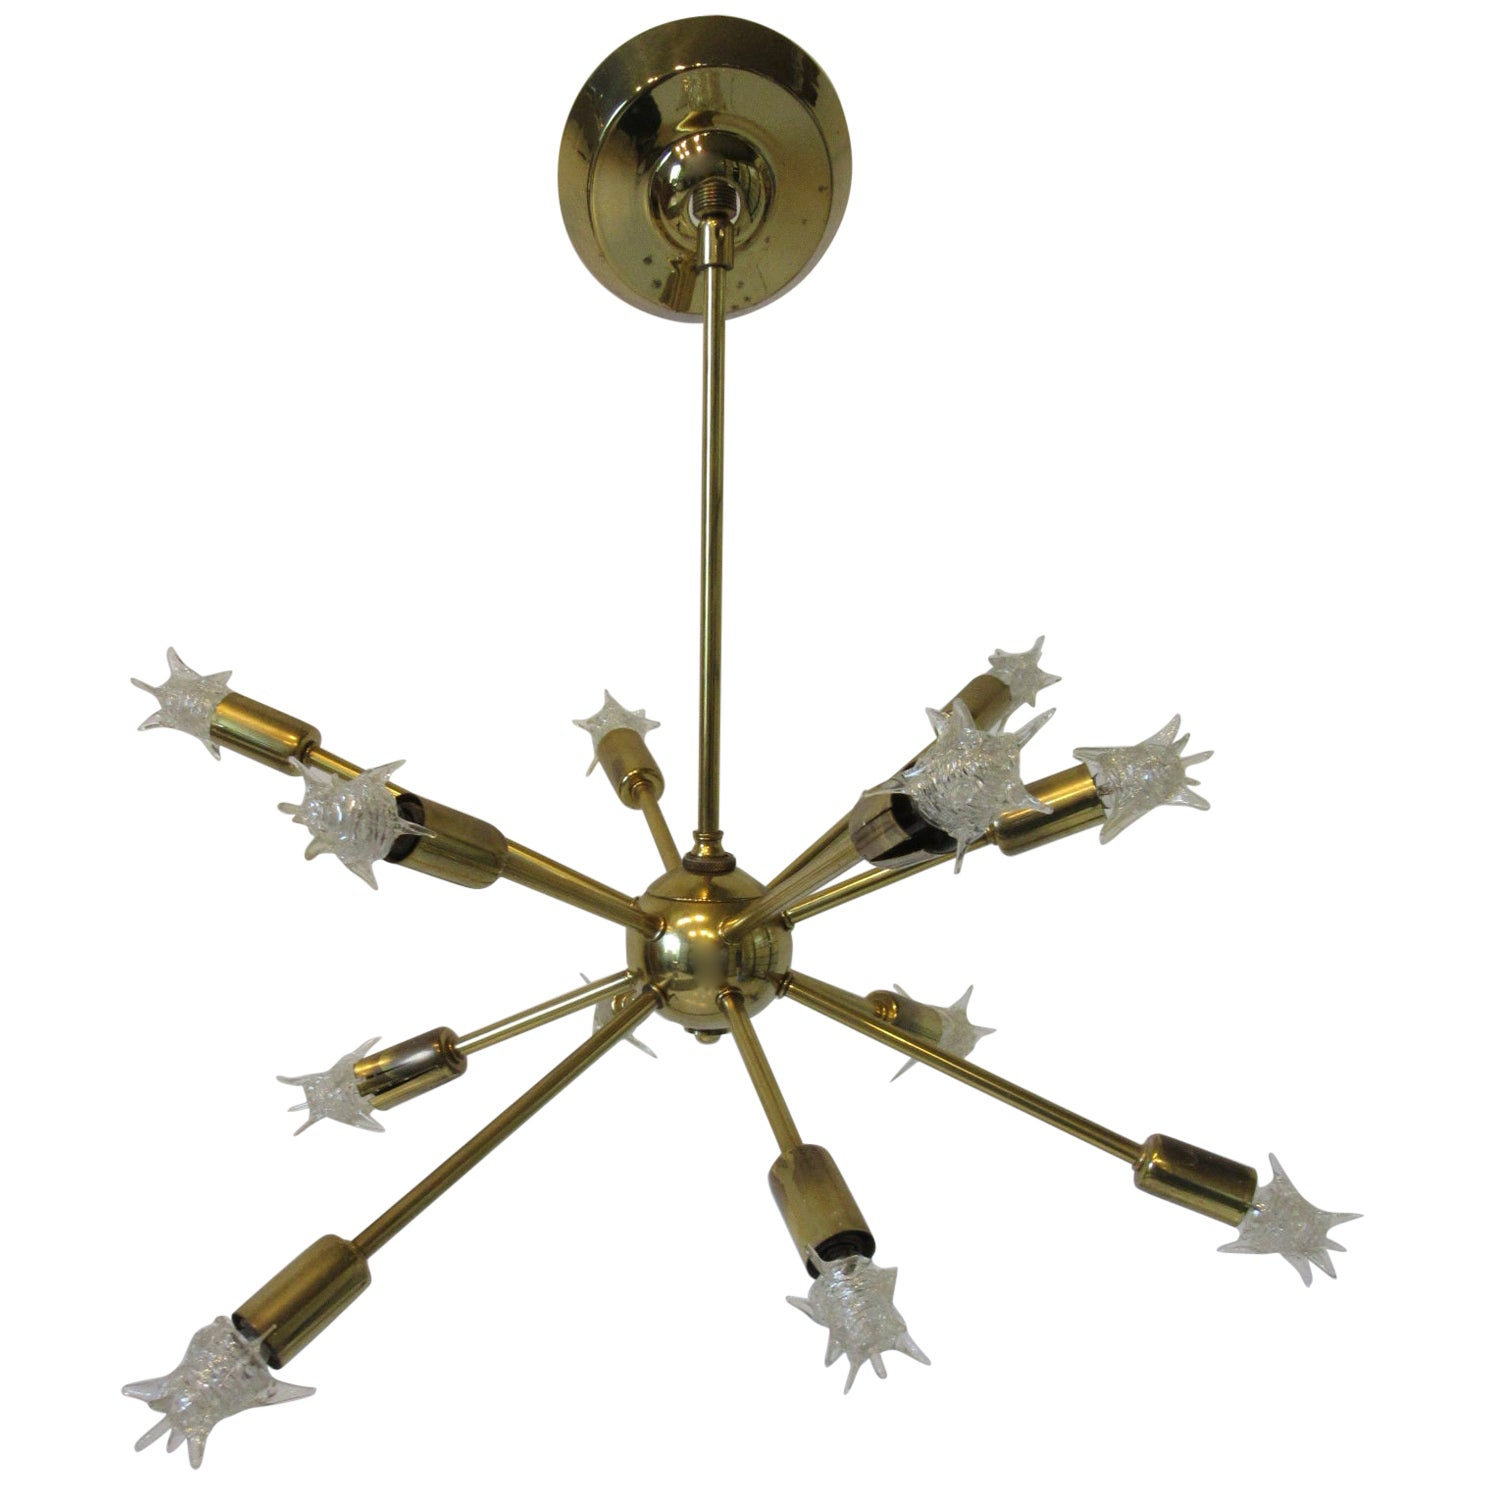 Midcentury Atomic or Spunik Brass Chandelier by the Majestic Lamp Co